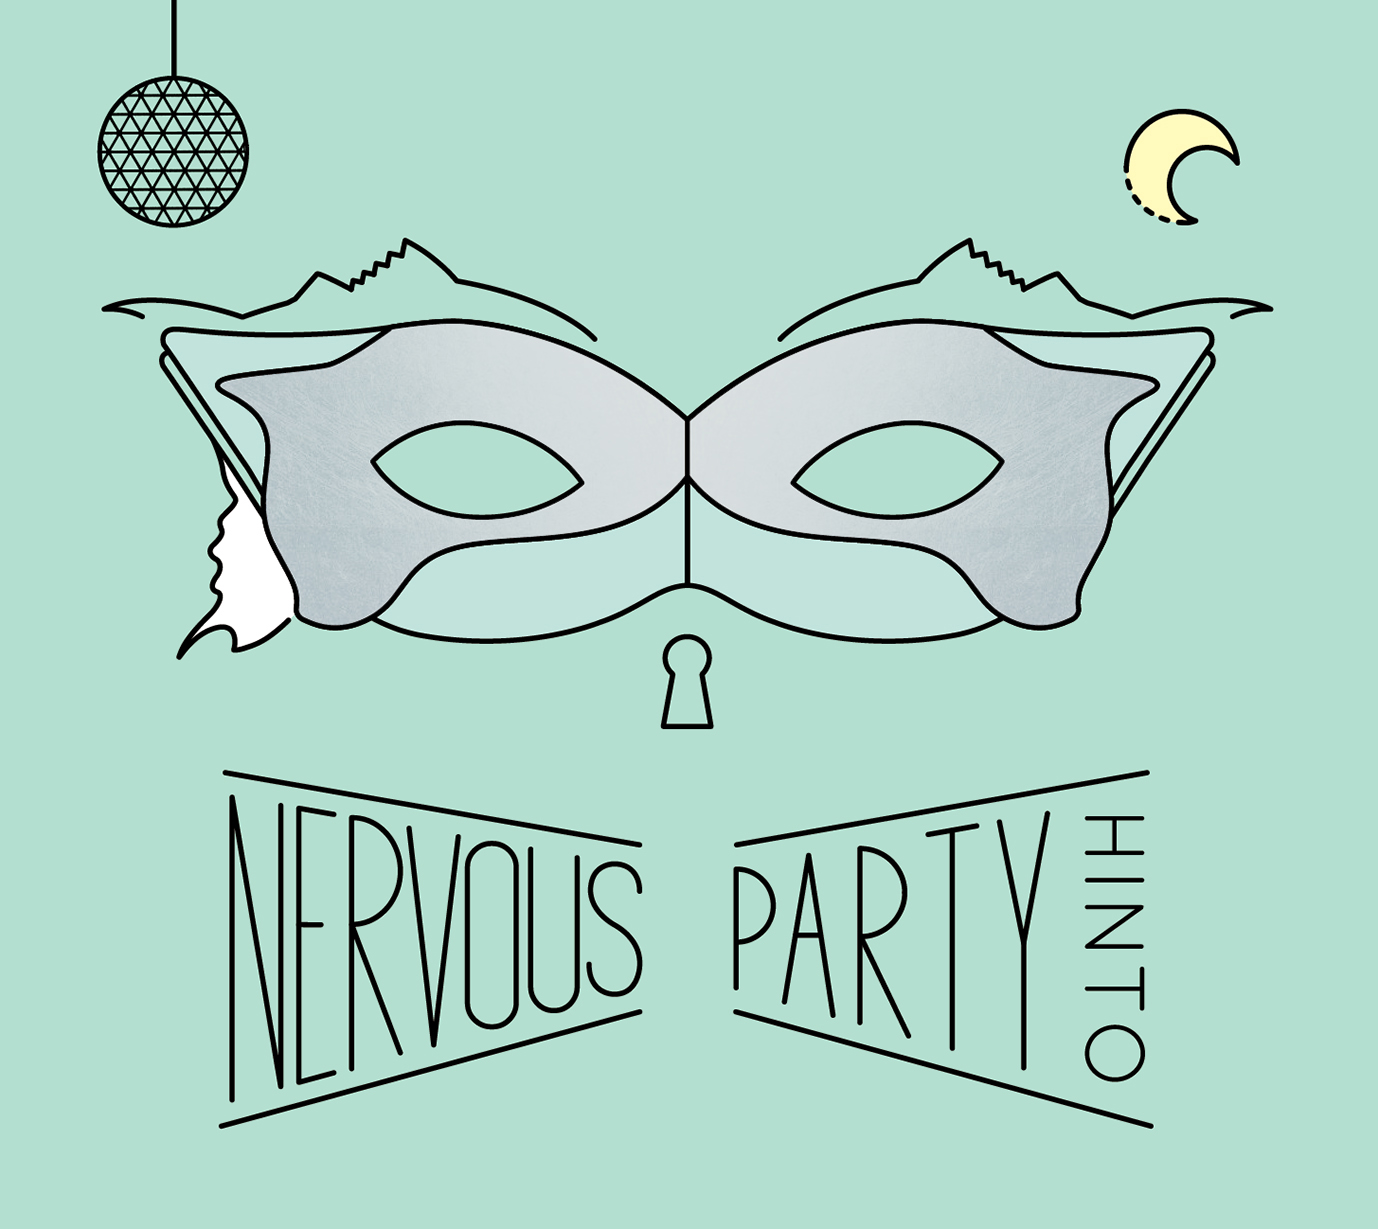 2nd full album「NERVOUS PARTY」